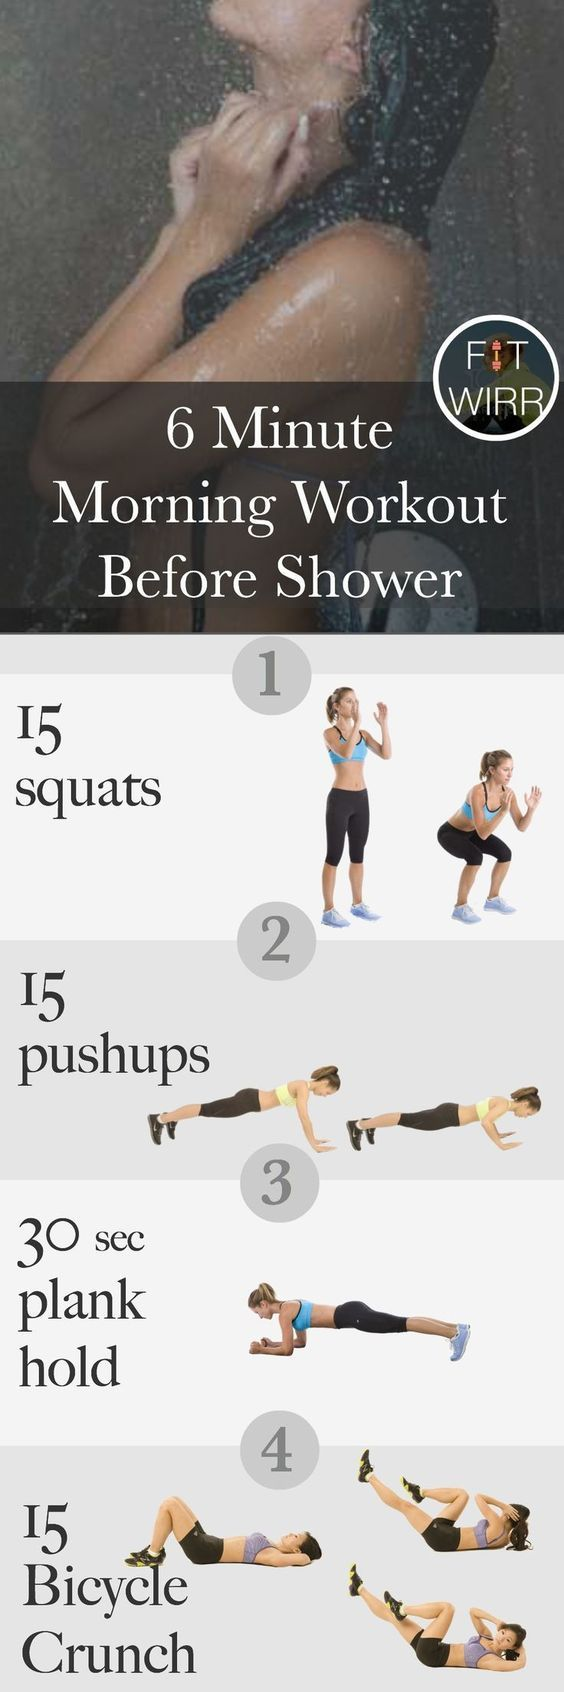 6 minute workout when your looking to squeeze in a workout on a busy day. Looks easy enough to use on a clinical or work day.: